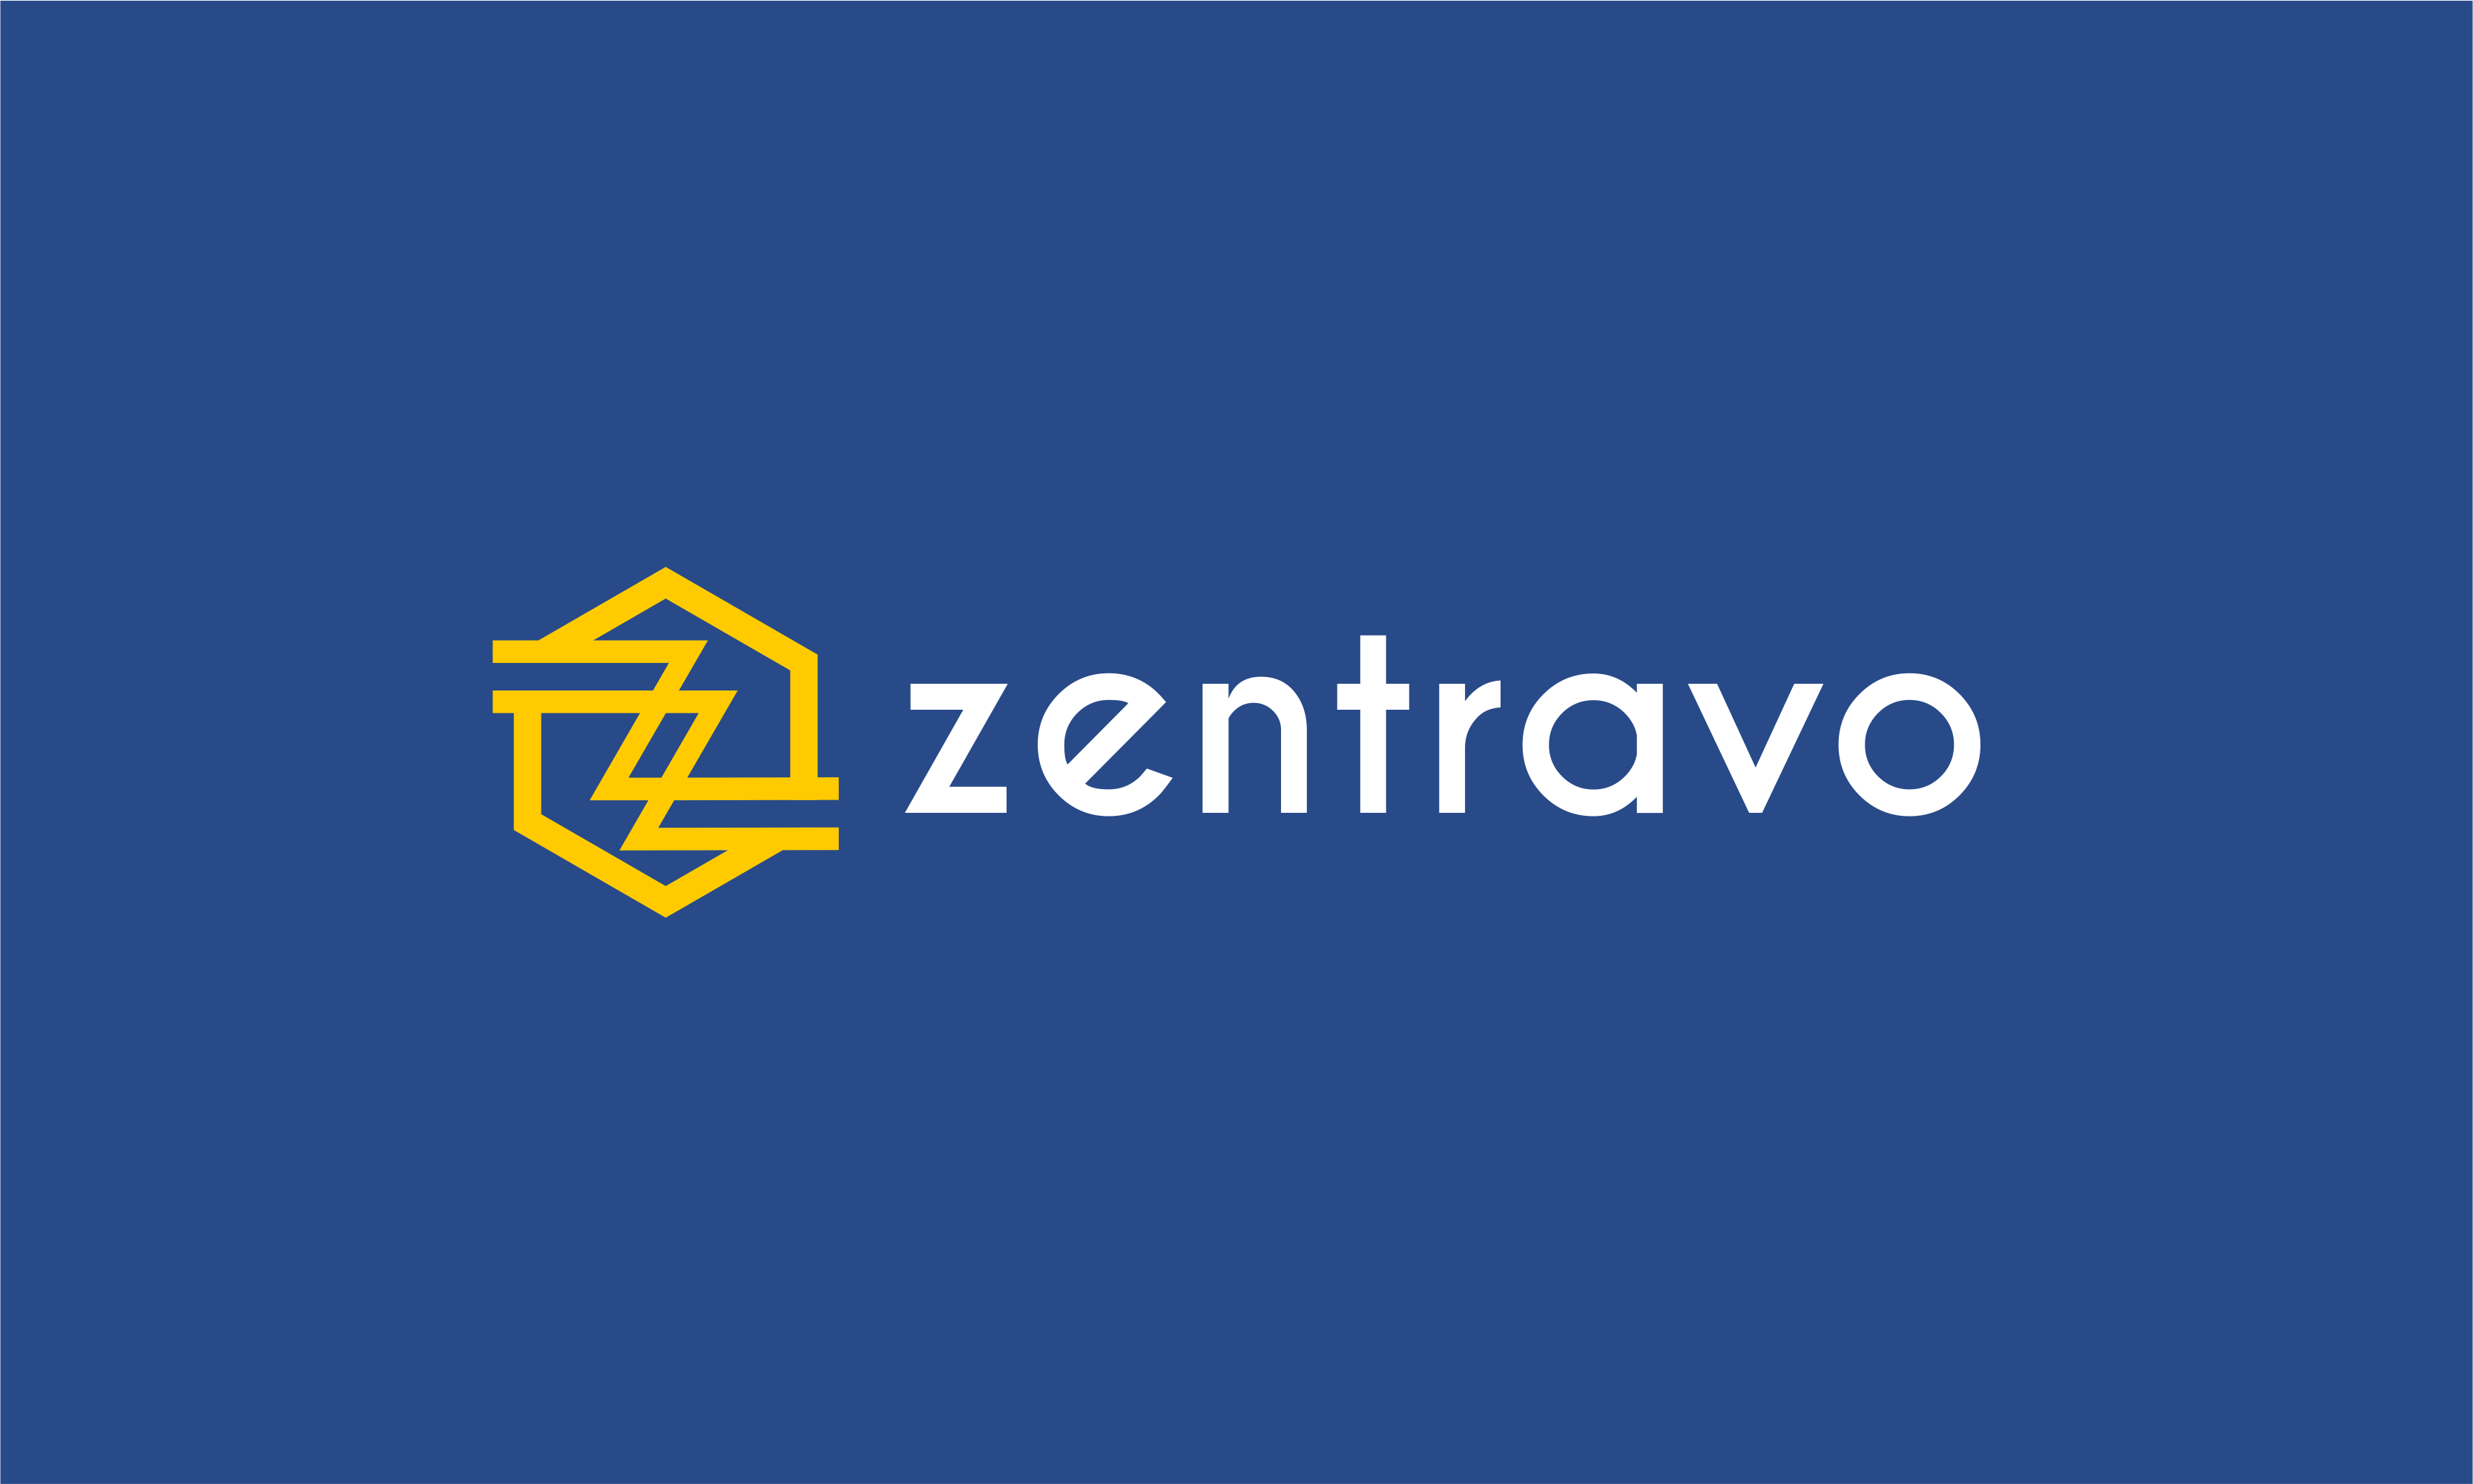 Zentravo - Health domain name for sale